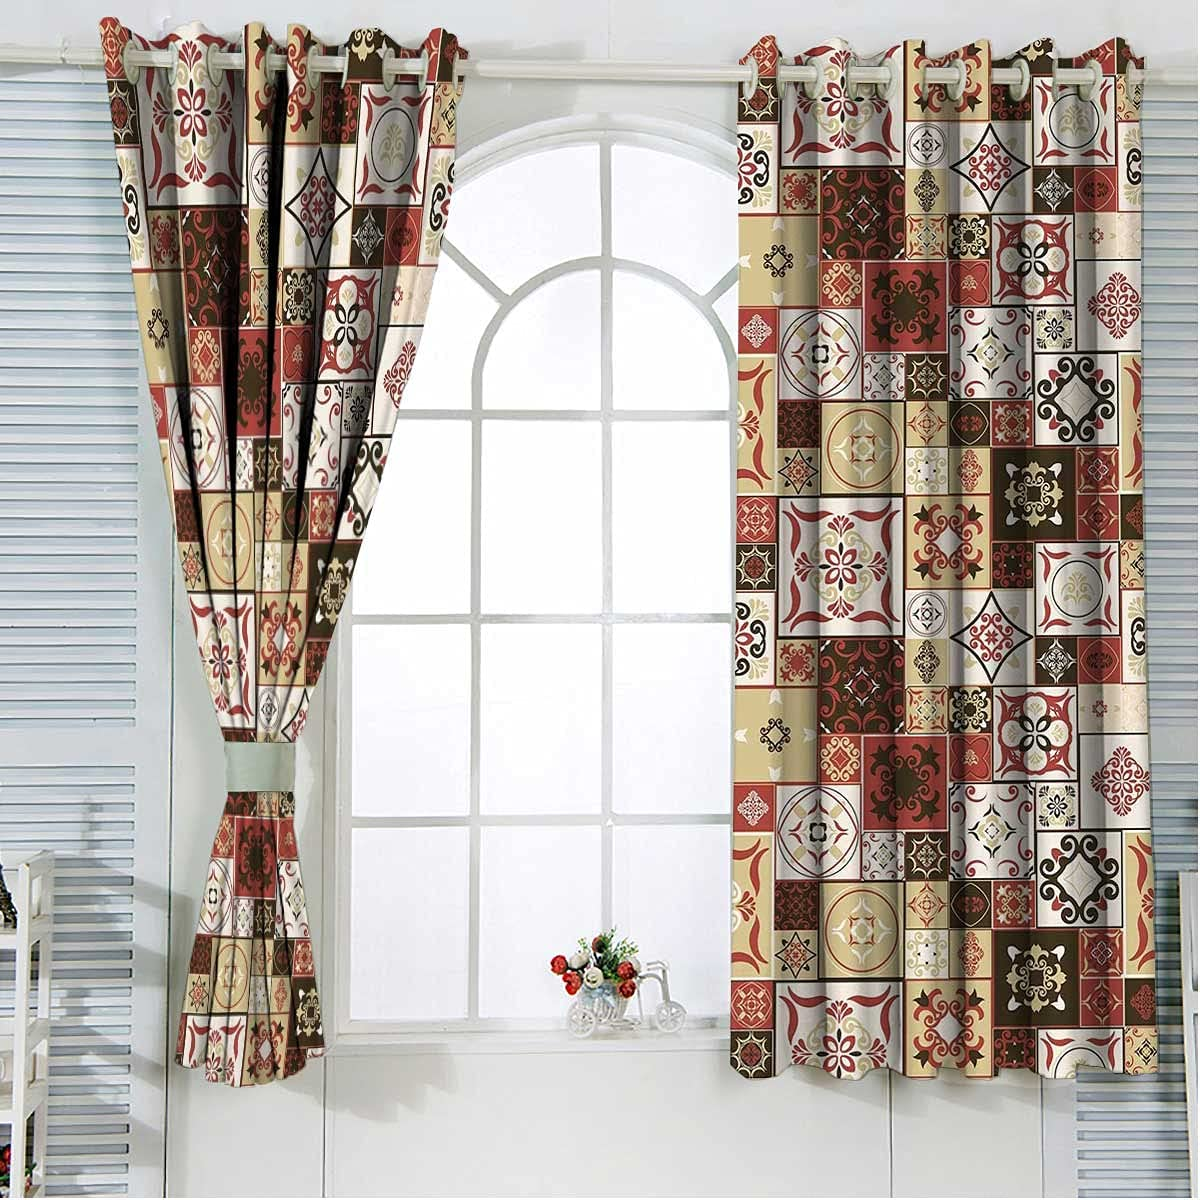 Moroccan Window Curtains Overseas parallel import regular item for Bedroom Length Dar 63 Cream Inches Max 54% OFF